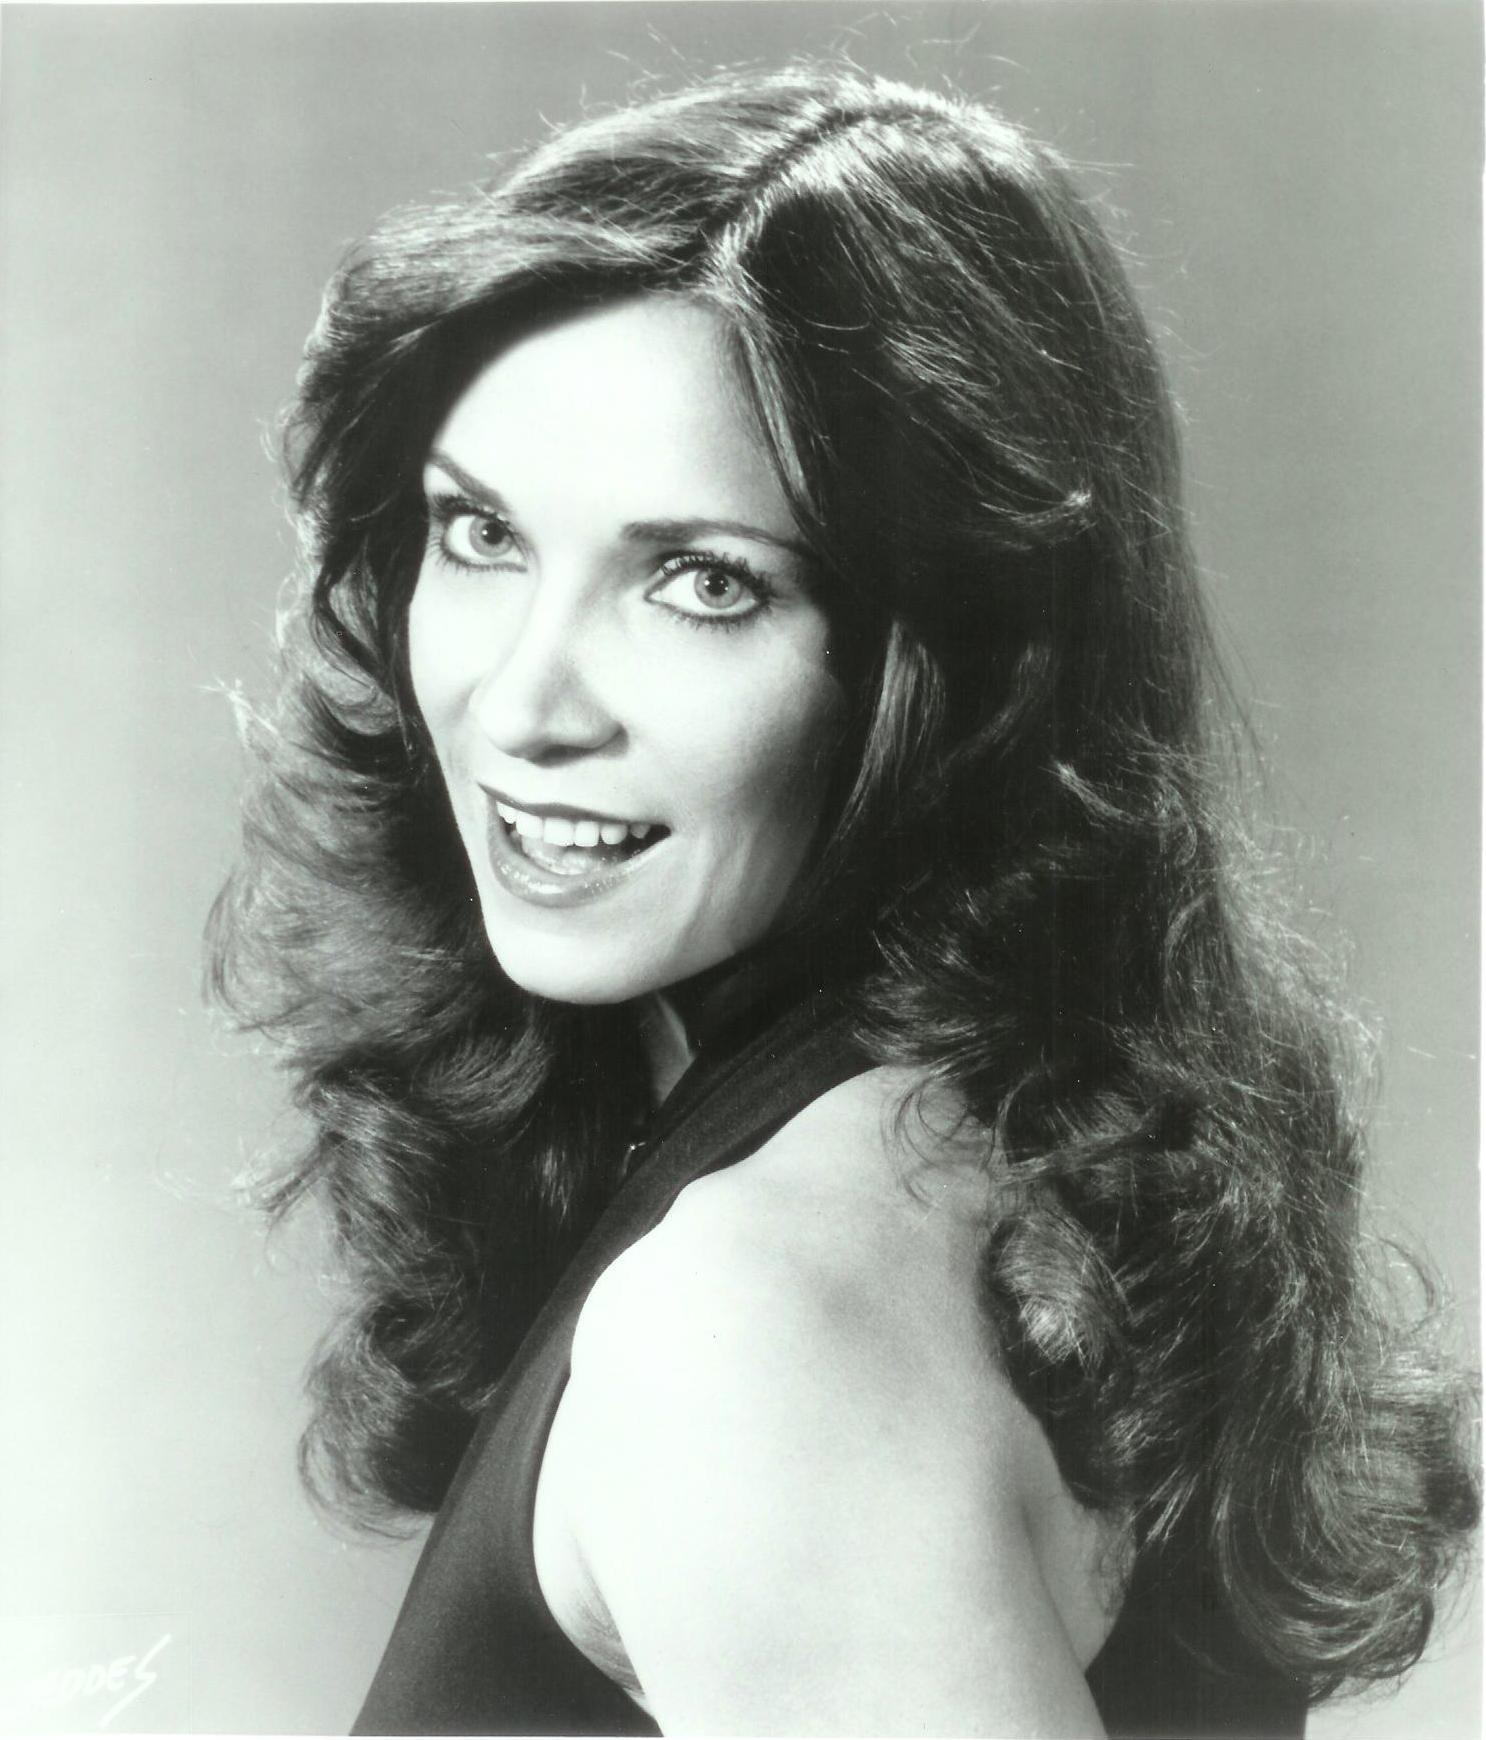 Kathy at the beginning of her singing career.